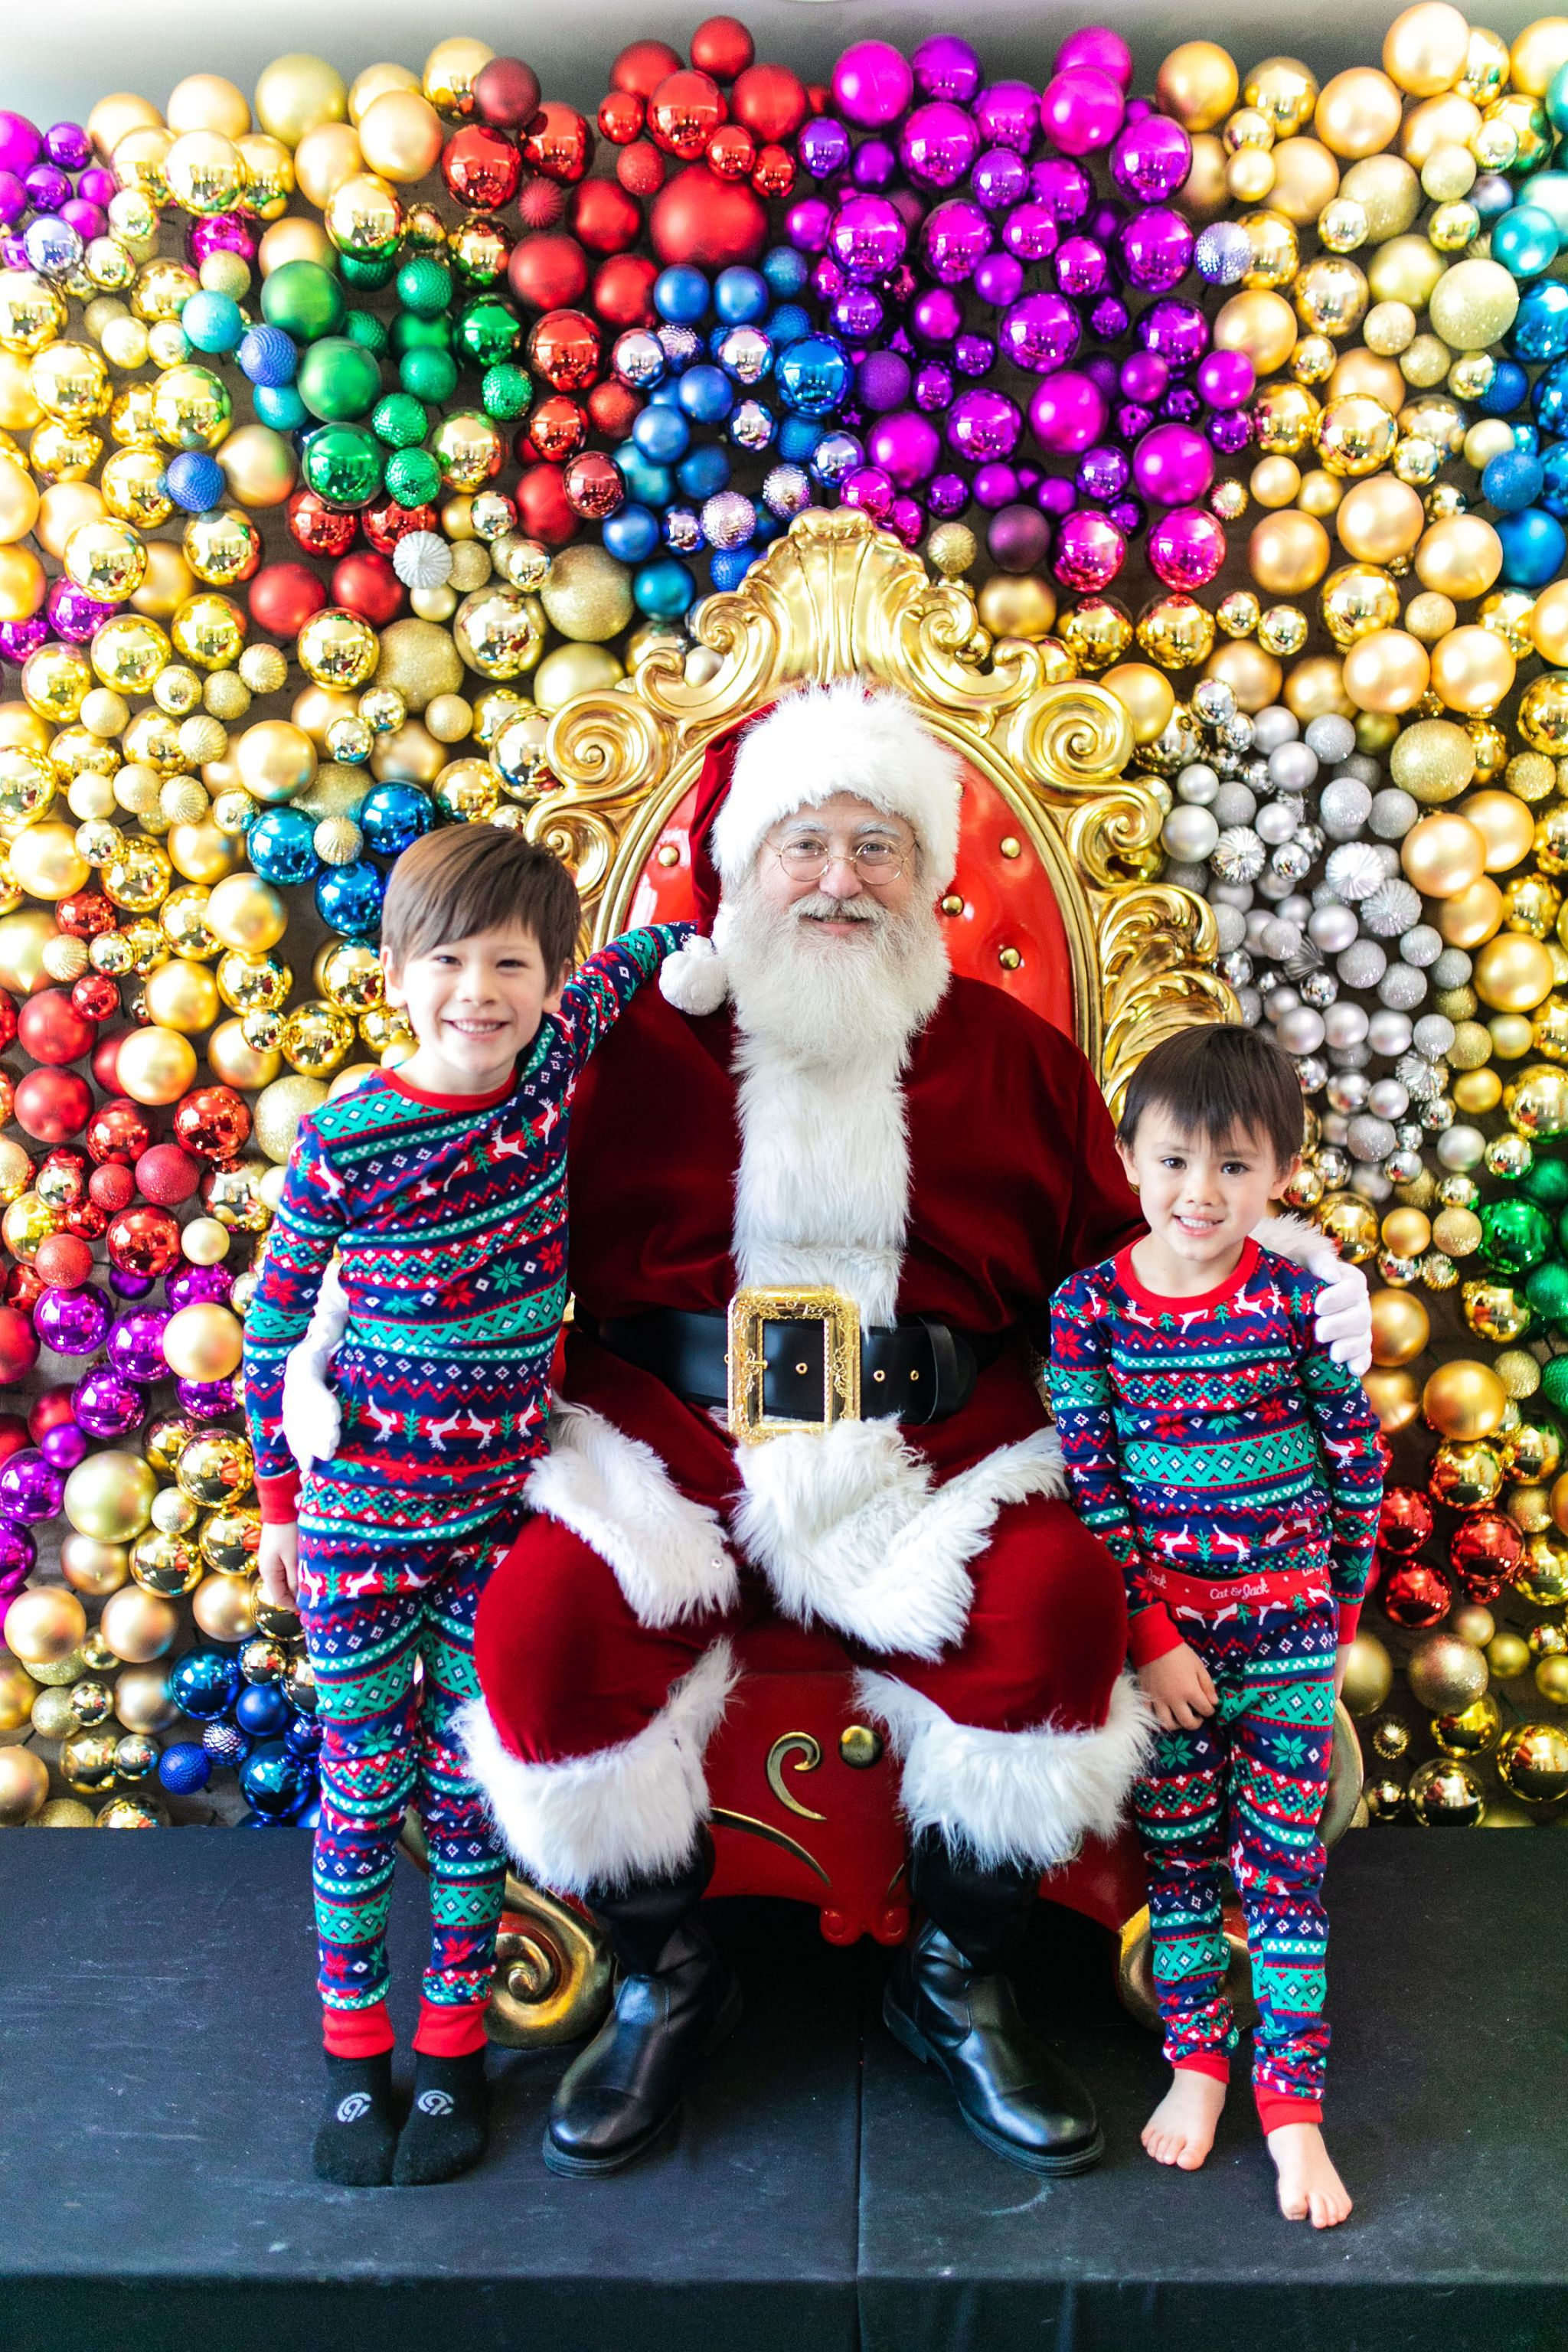 Swissotel Santa Suite, Best Holiday event Chicago, Best Santa Claus Chicago, Jennifer Worman, Best Things to do with Kids for the Holidays Chicago, Chicago Mom Blogger, Chicago Holiday Event